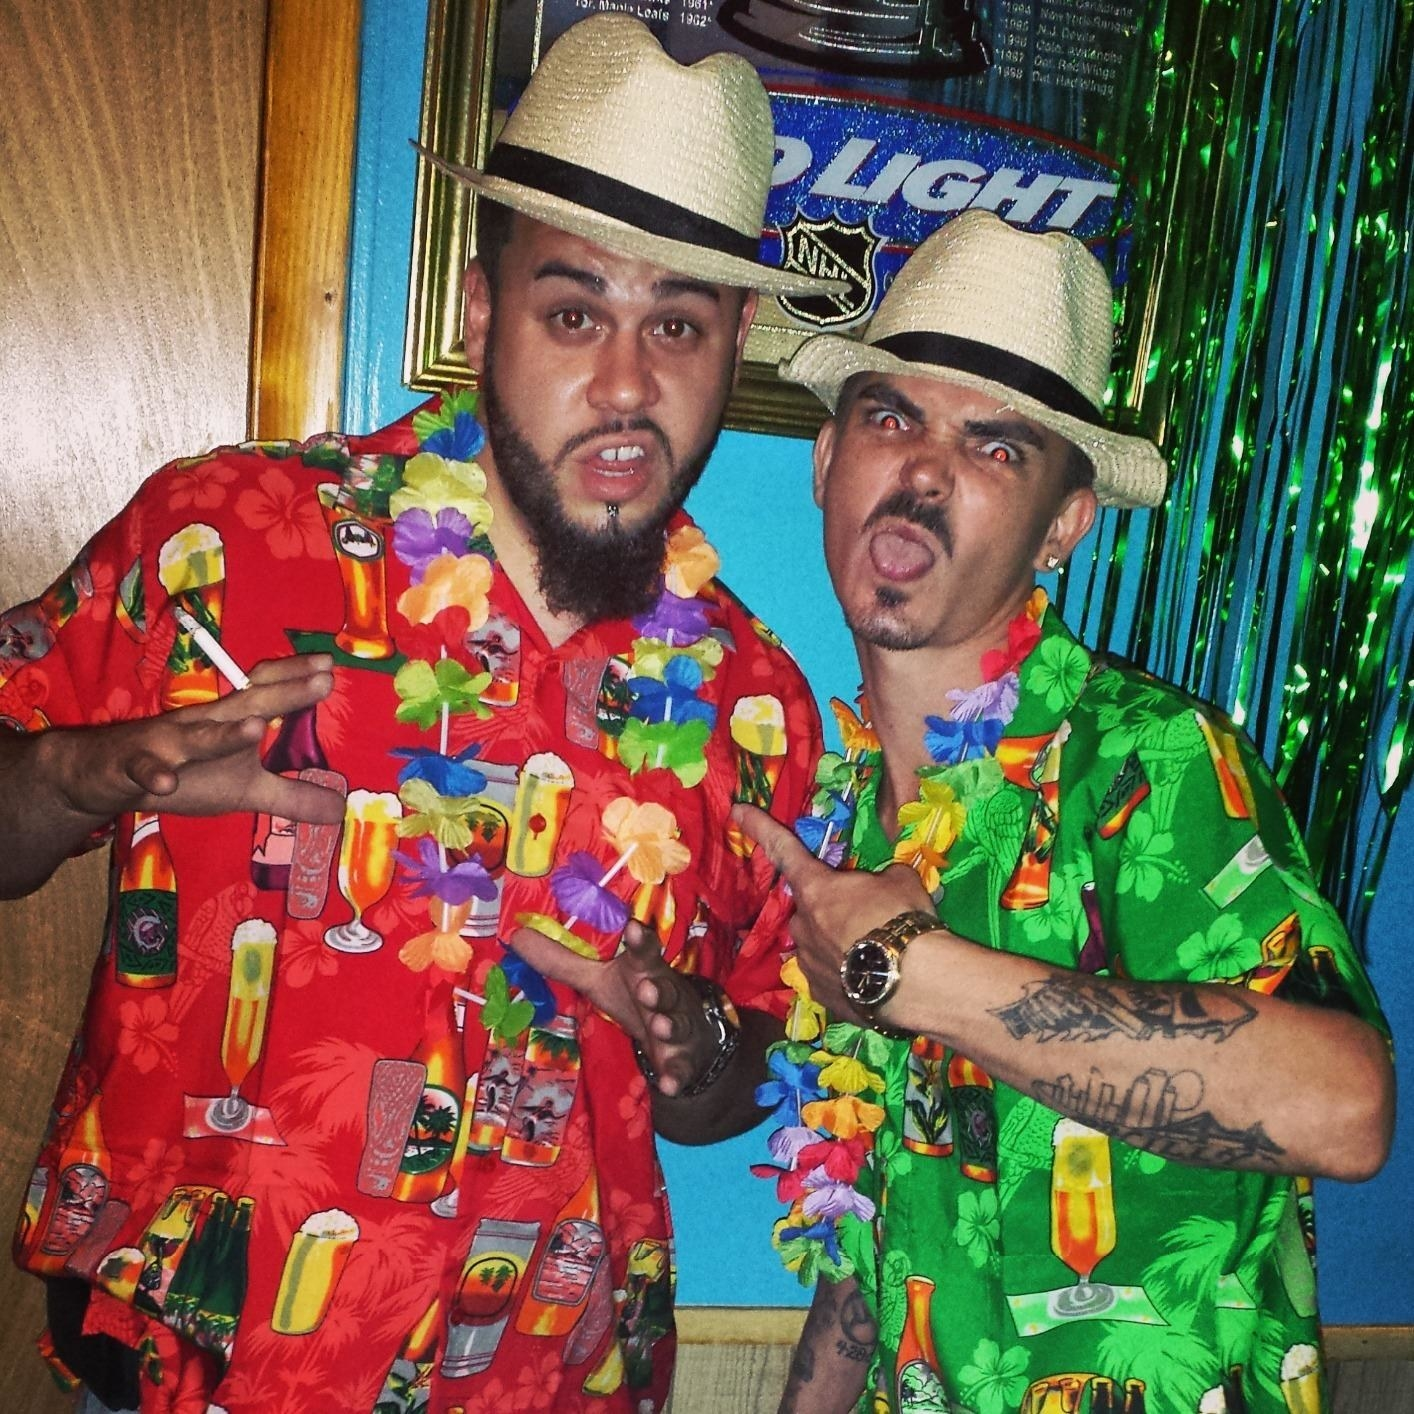 two reviewers wear matching hawaiian shirts covered in tiki drinks